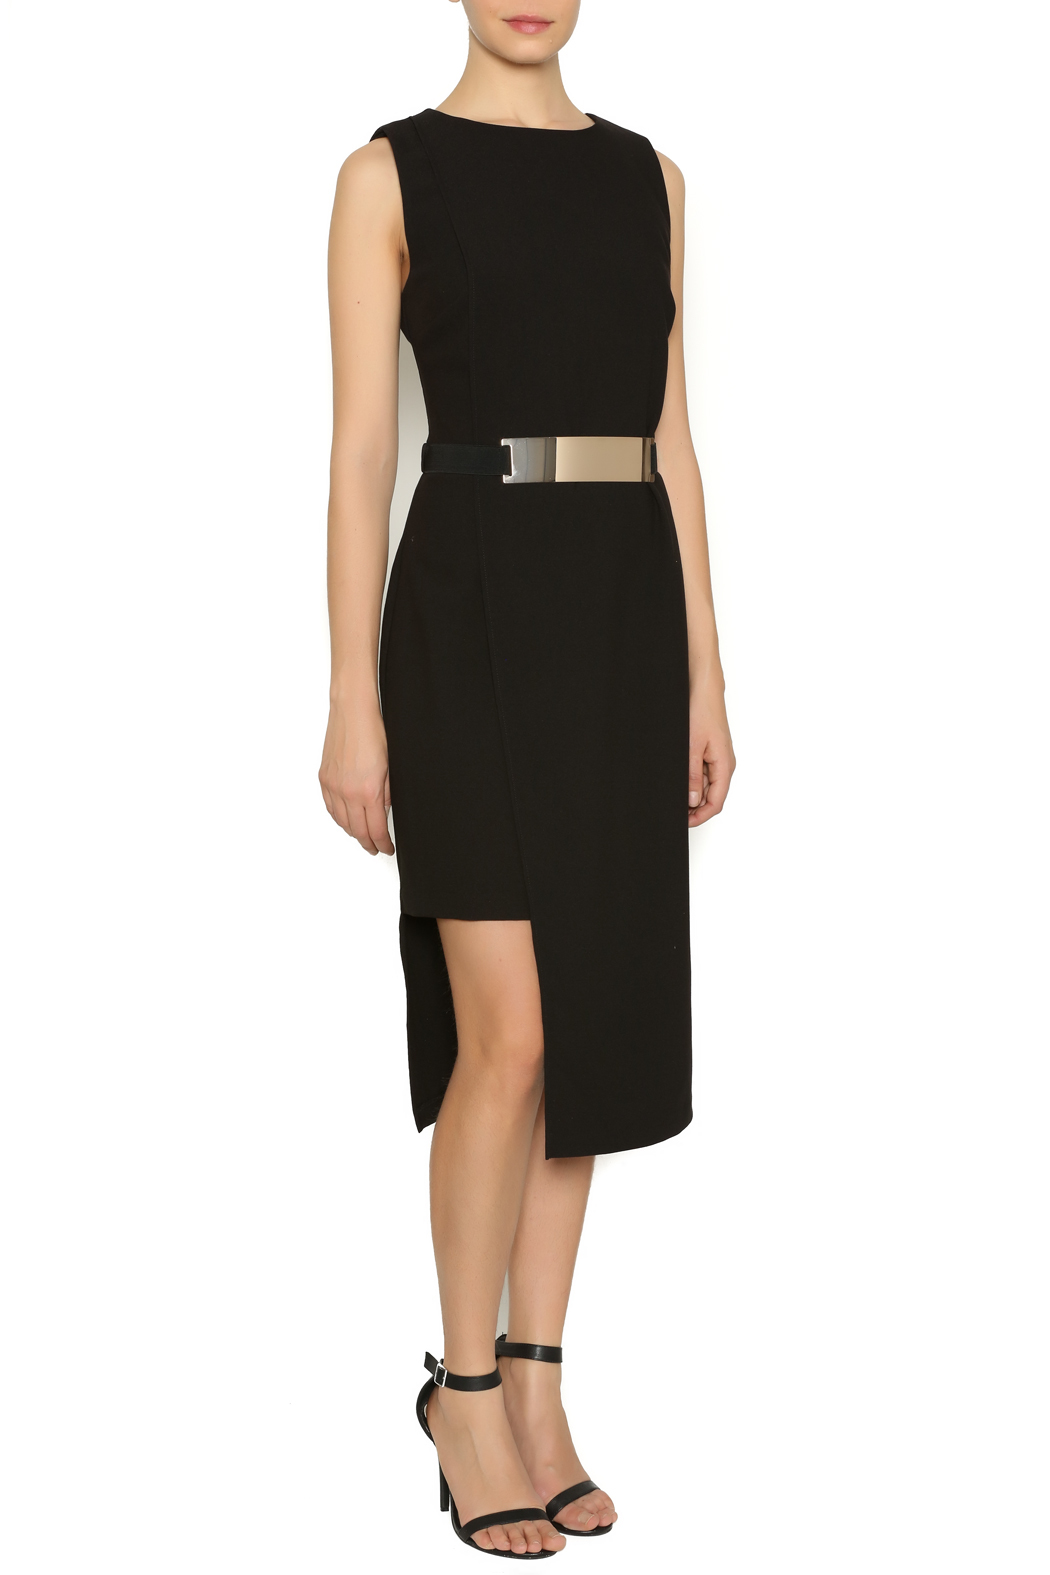 Mystic Sleeveless Black Dress from Manhattan by Dor L'Dor ...